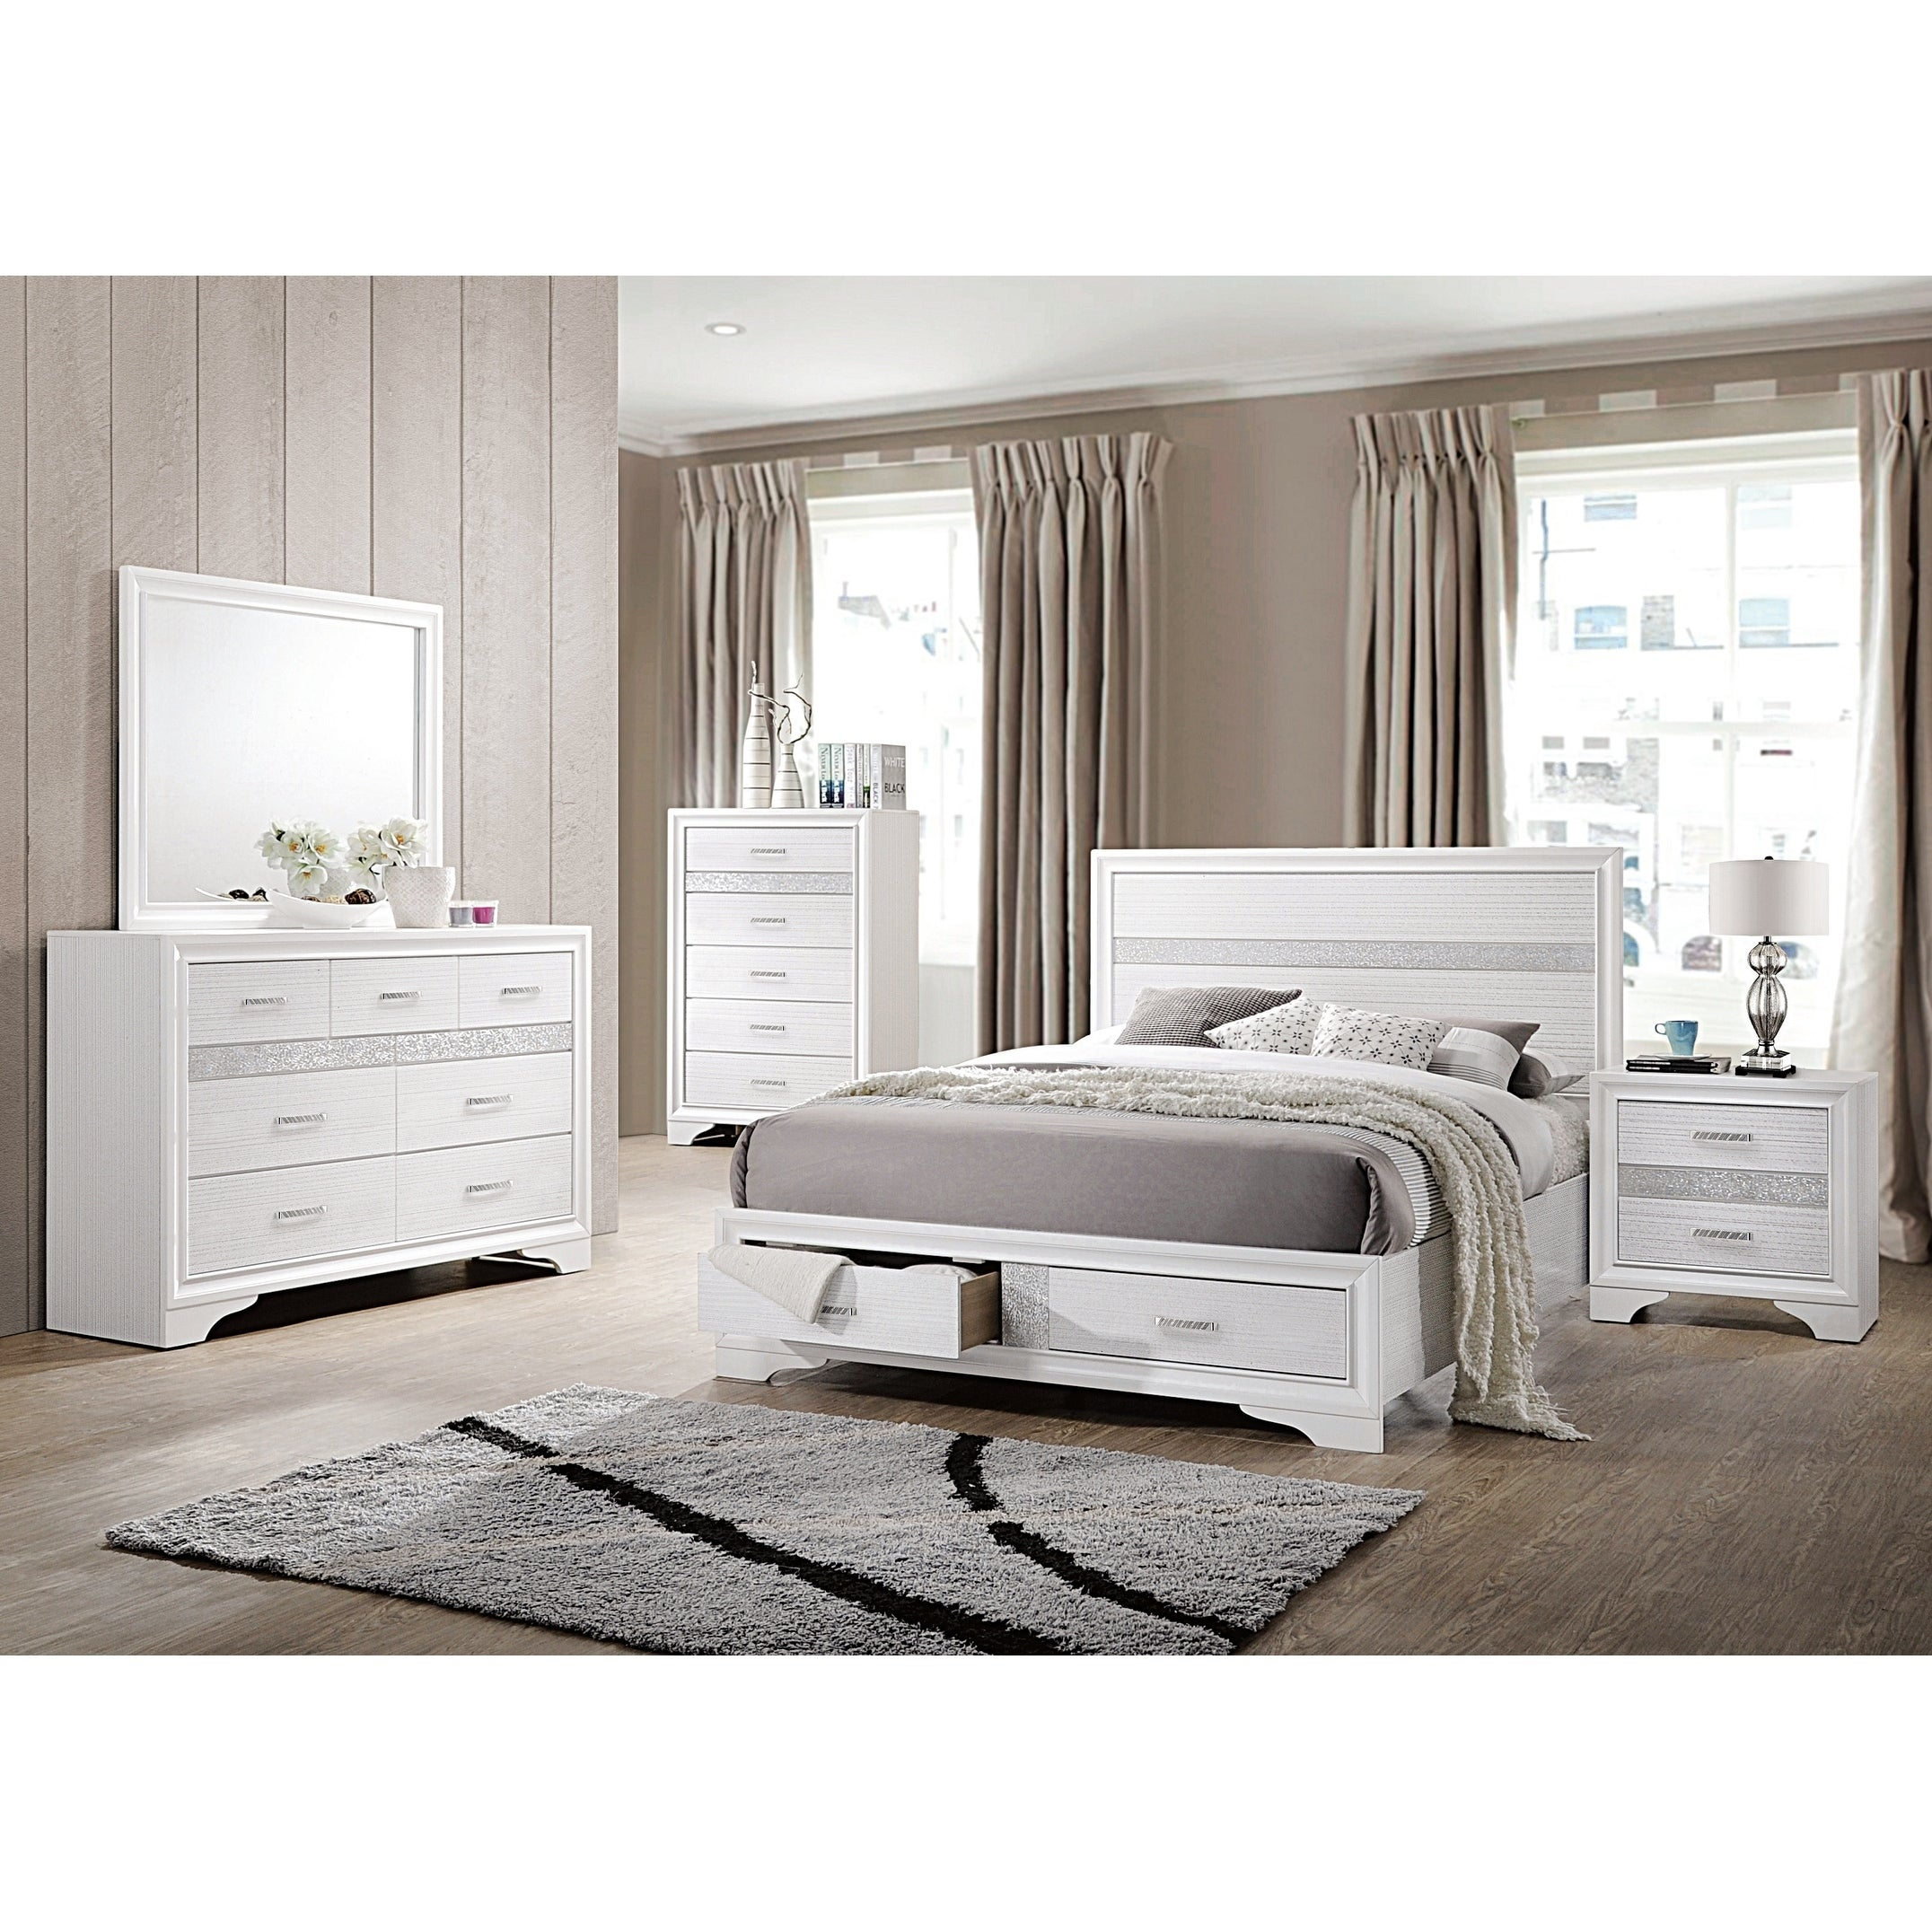 buy white bedroom sets online at overstock our best bedroom rh overstock com white bedroom furniture set king white bedroom furniture sets uk